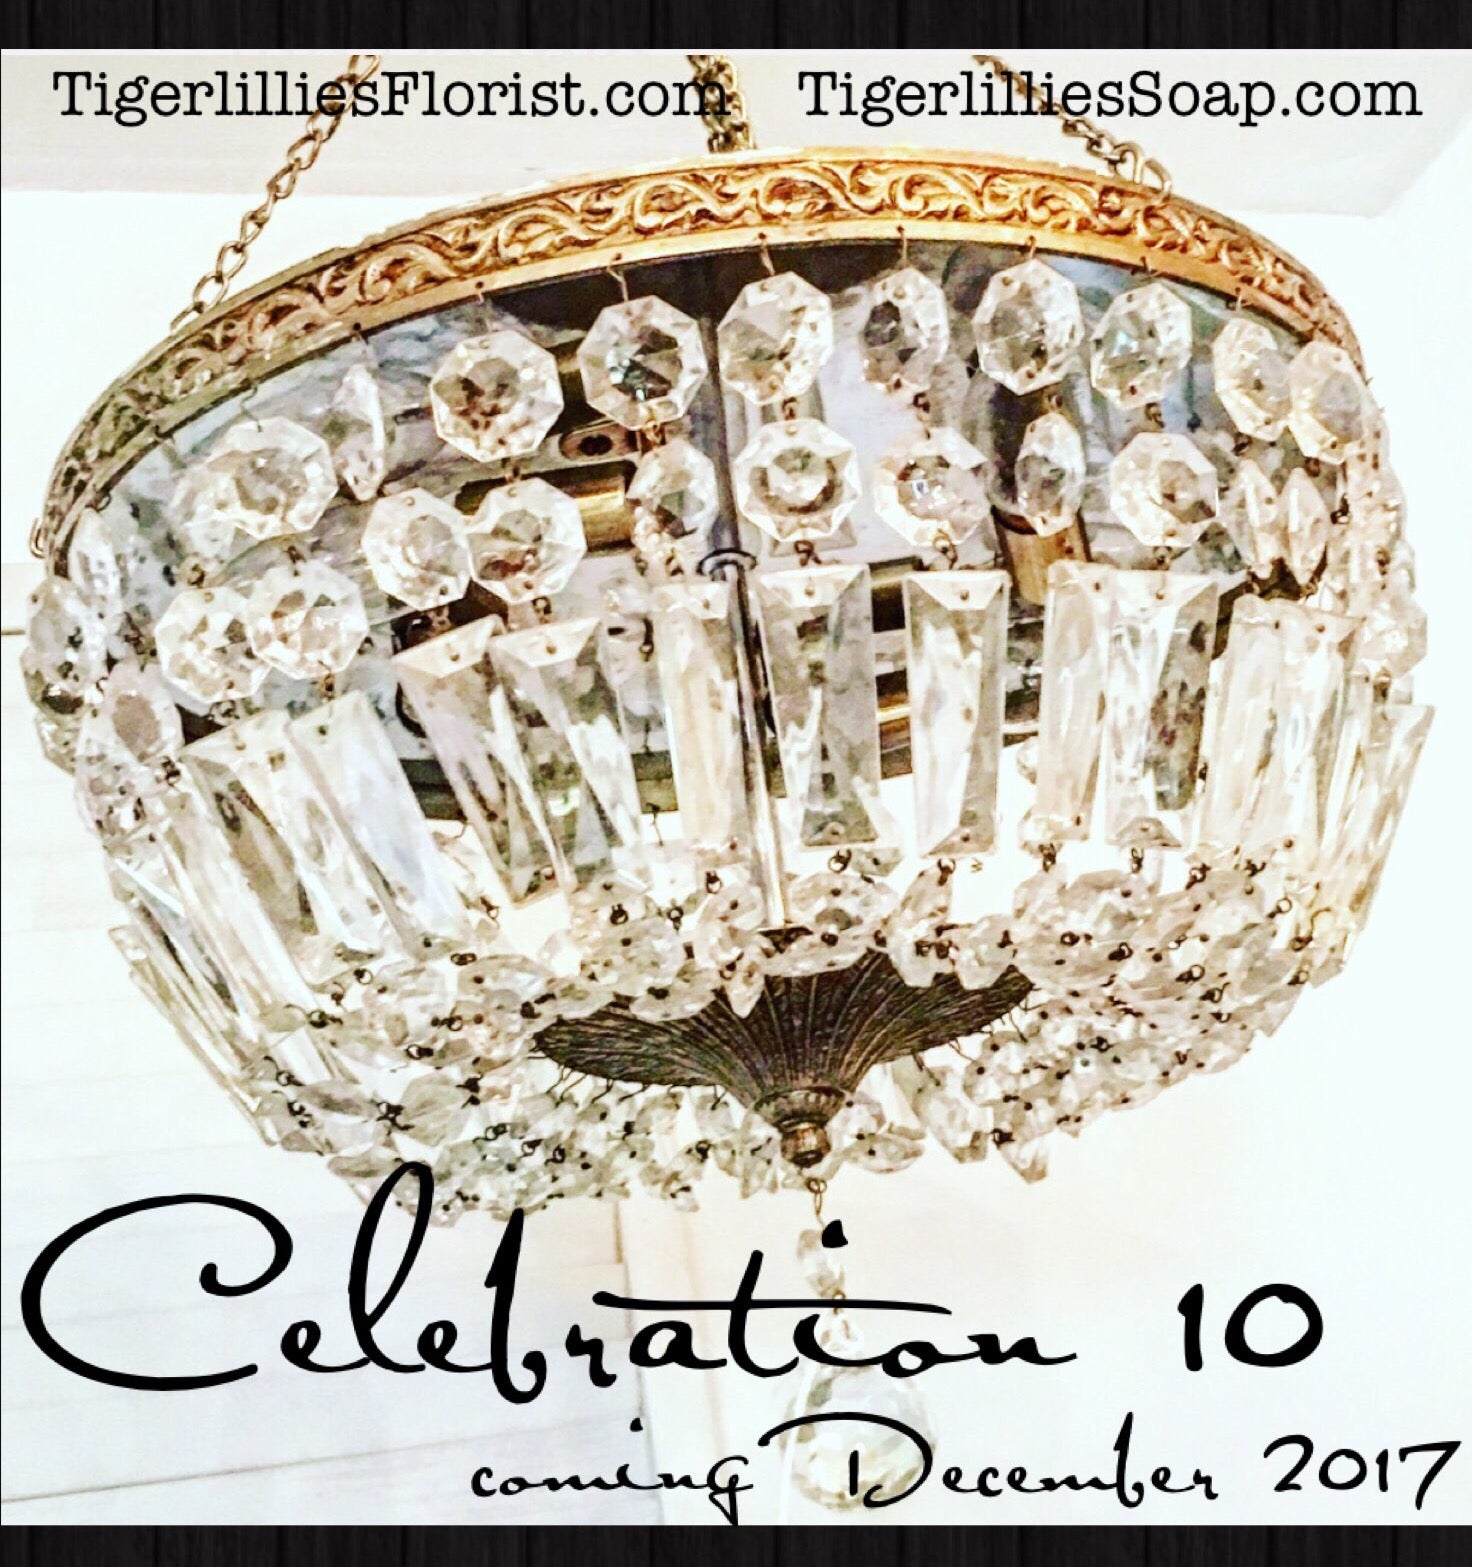 Tigerlillies Soap Launches as we Celebrate 10 YEARS!